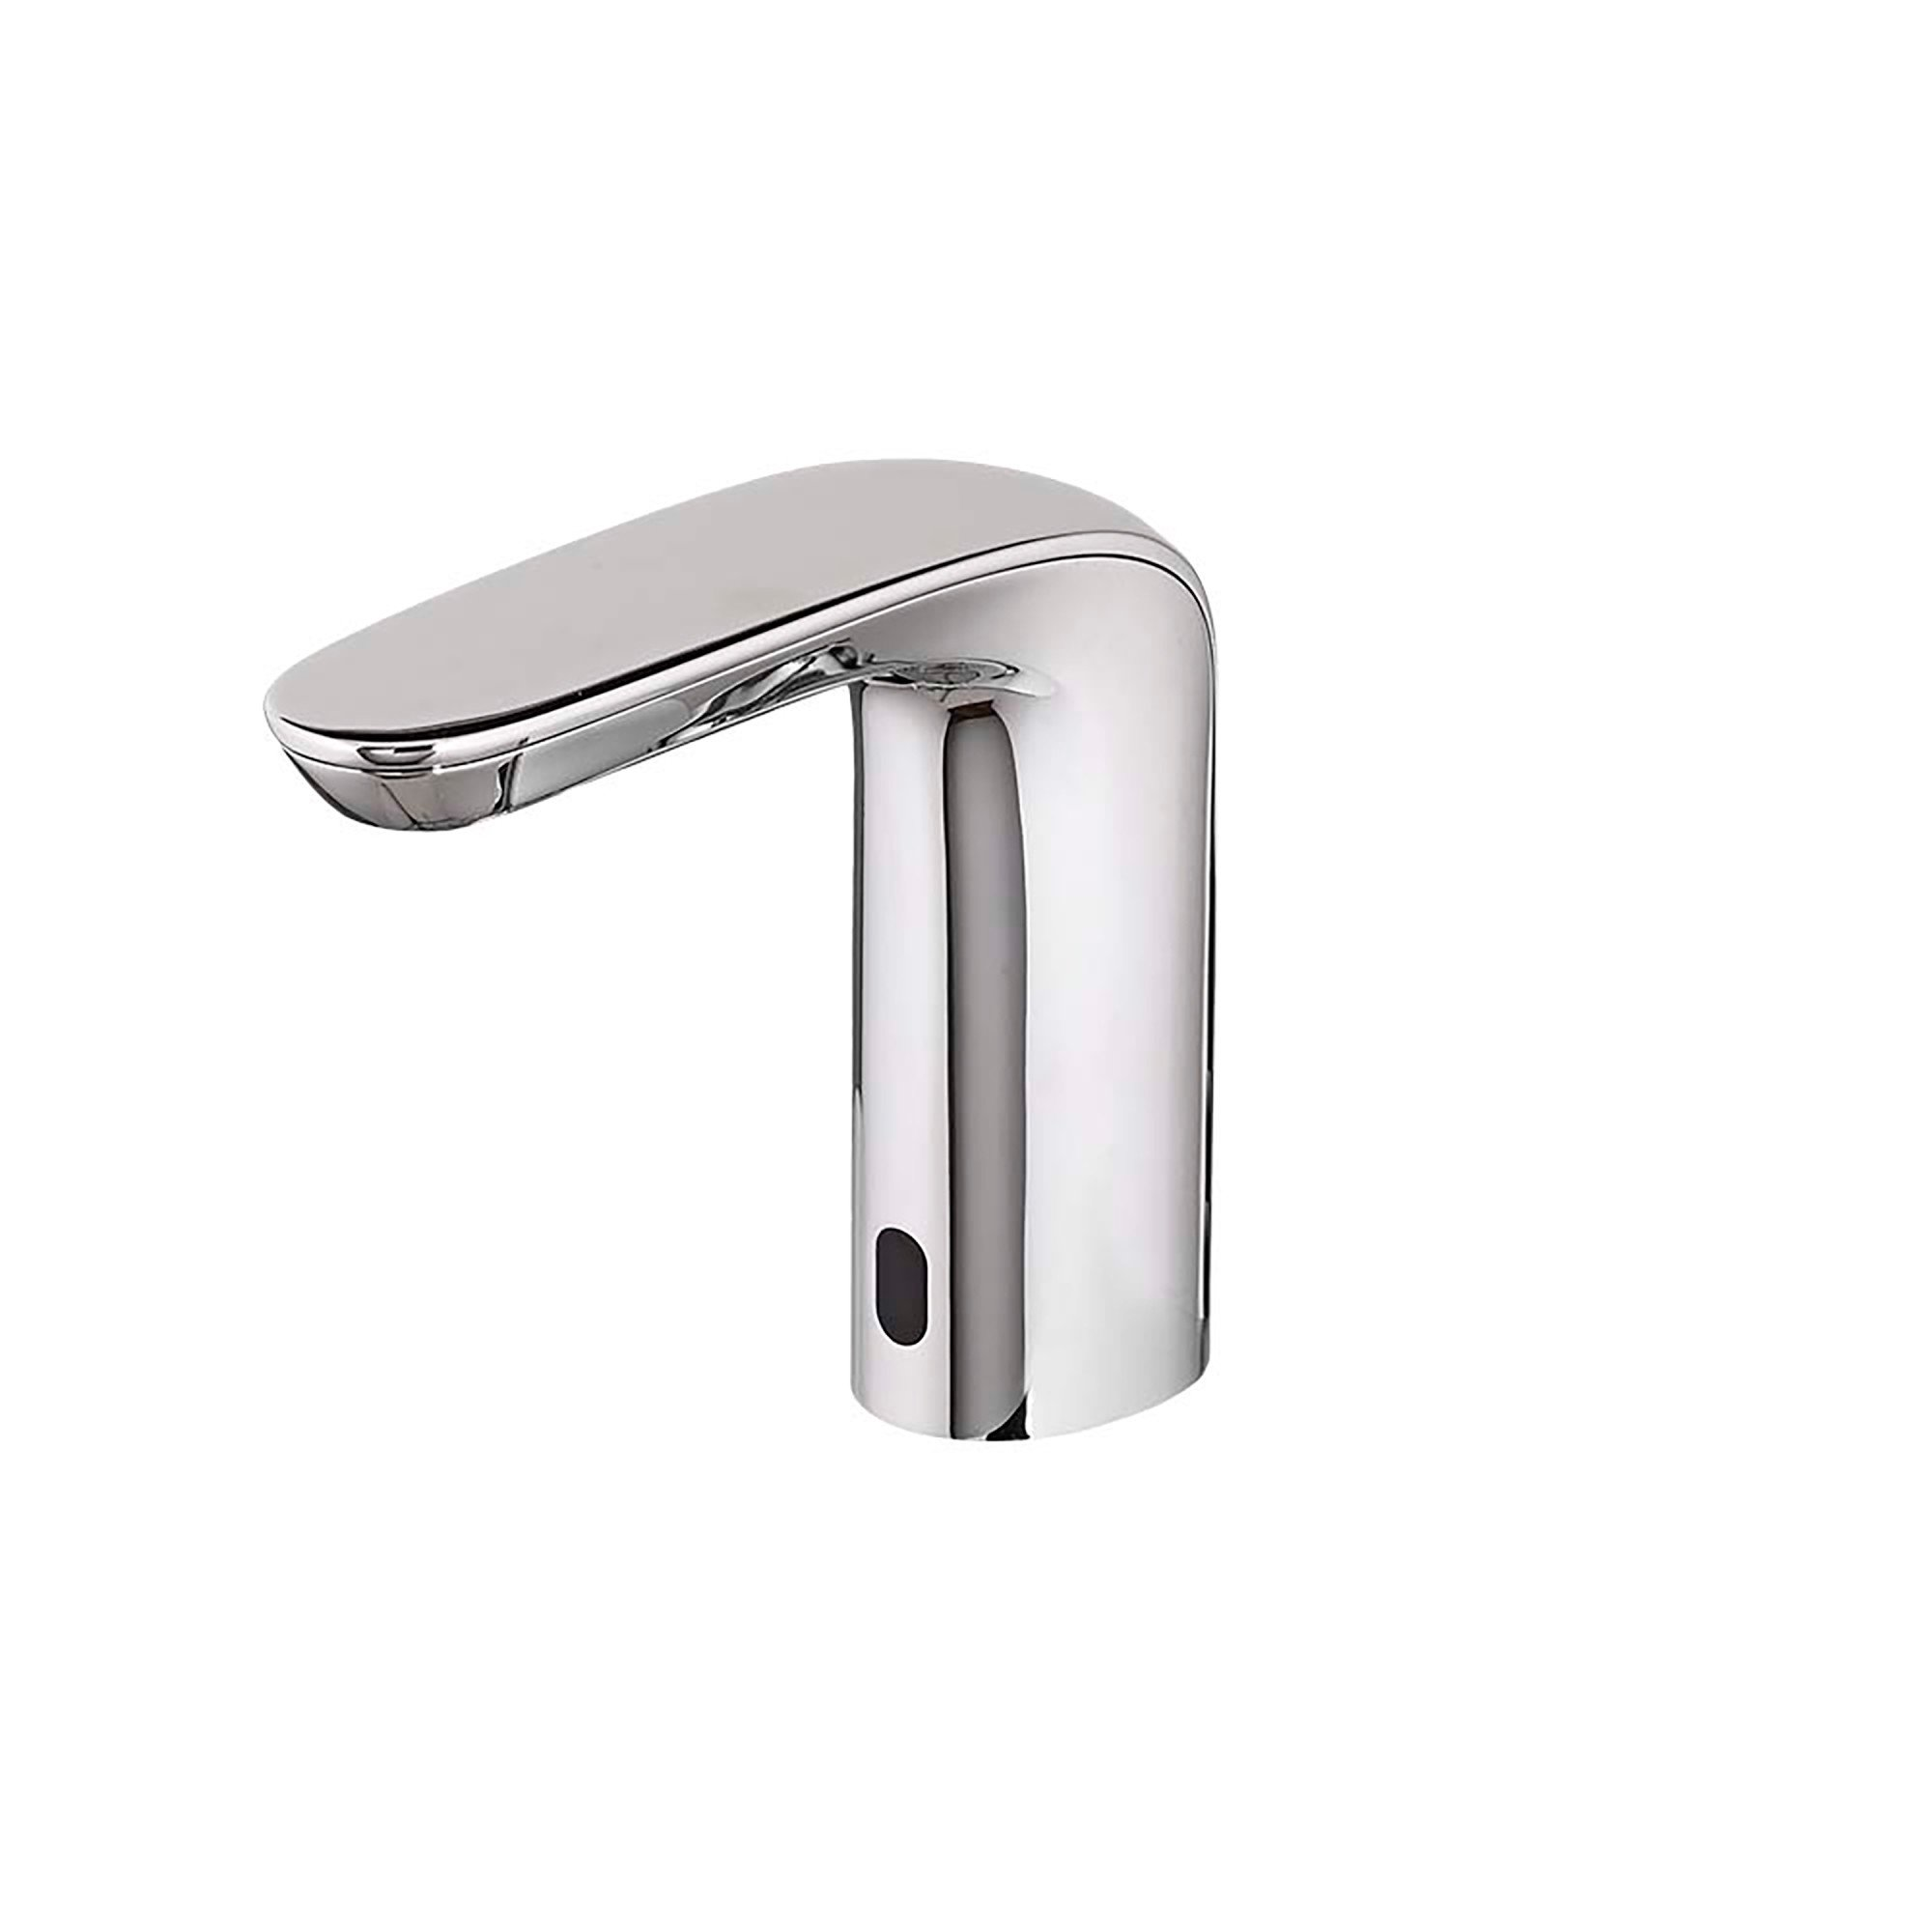 American Standard 775B115.002 .35 GPM NextGen Selectronic Integrated Faucet Battery Powered ADM LimiTemp Safety Shut-Off, Polished Chrome